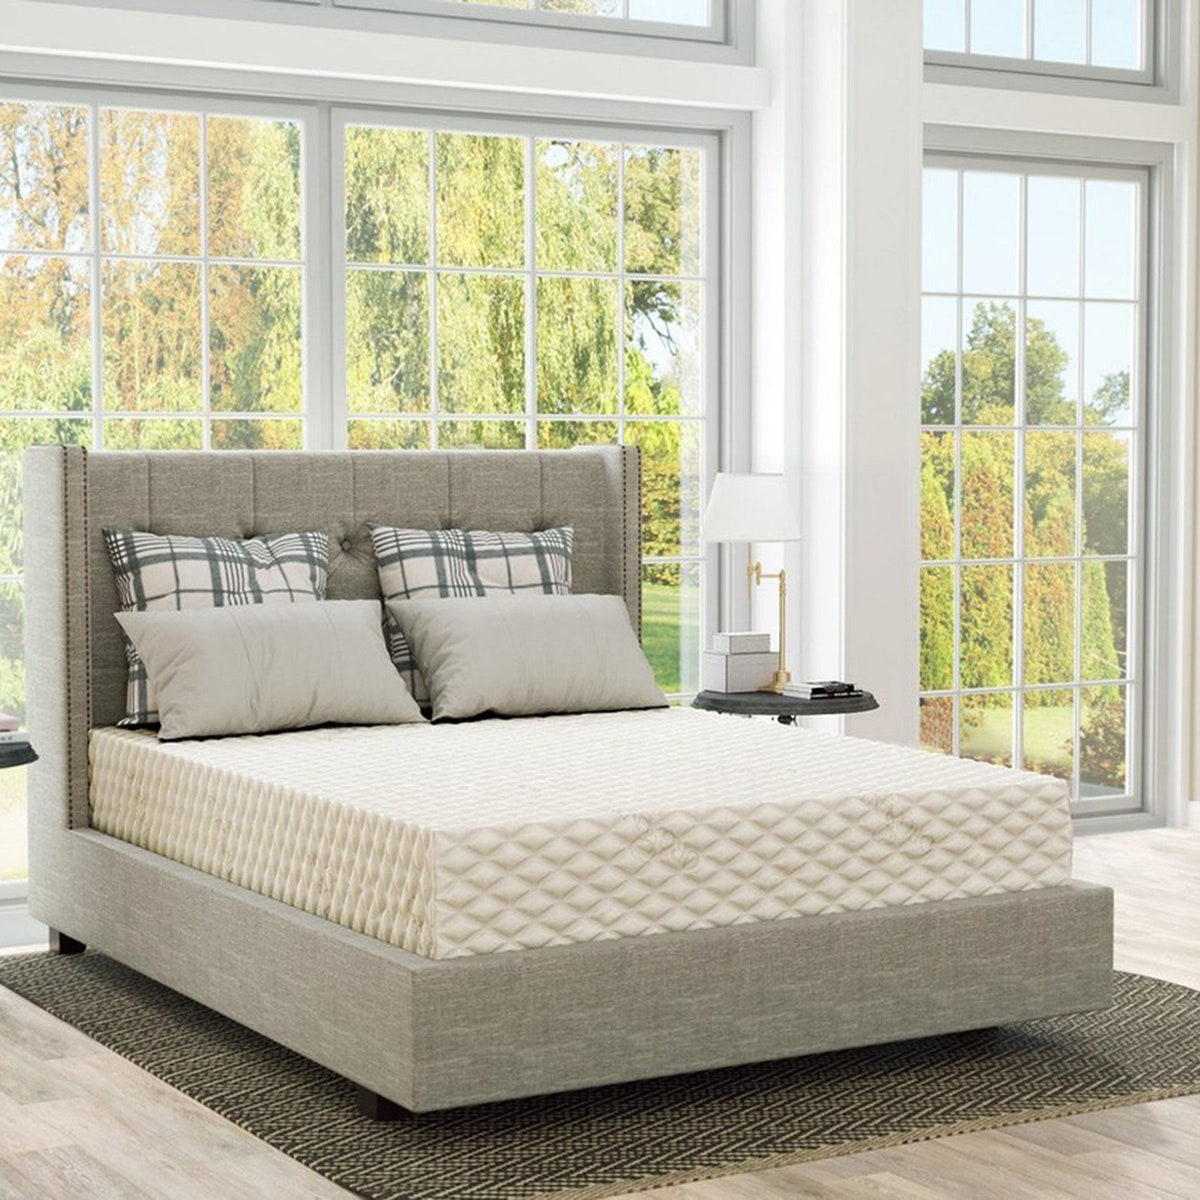 plushbeds natural latex matress _ bedroom with windows and pillows